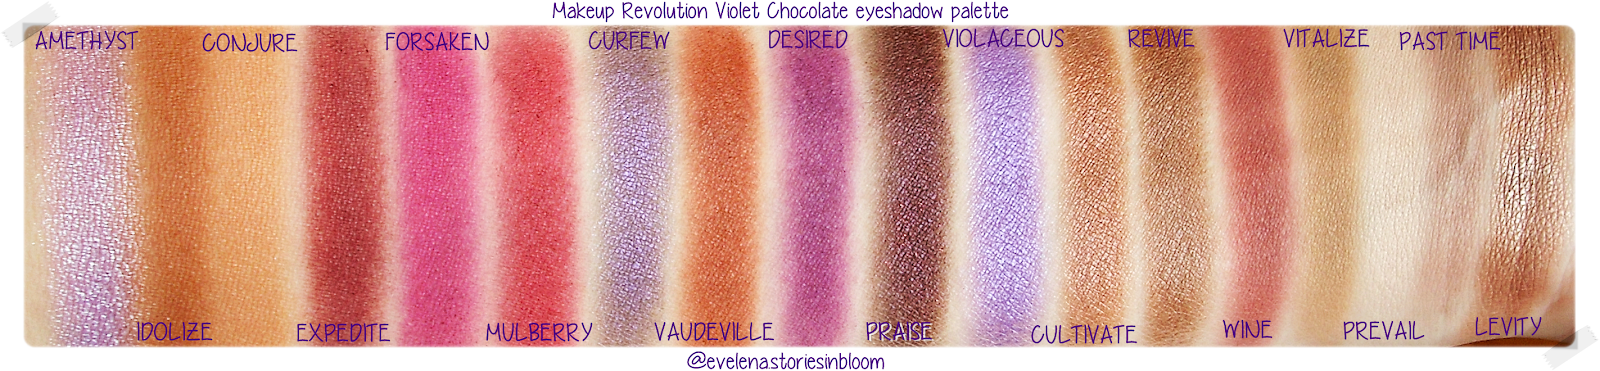 Makeup Revolution the Violet Chocolate eyeshadow palette - norvina - too faced - huda beauty - review - make-up look - Golden Rose Soft & Matte lipstick 101, 106, 114 - review swatch